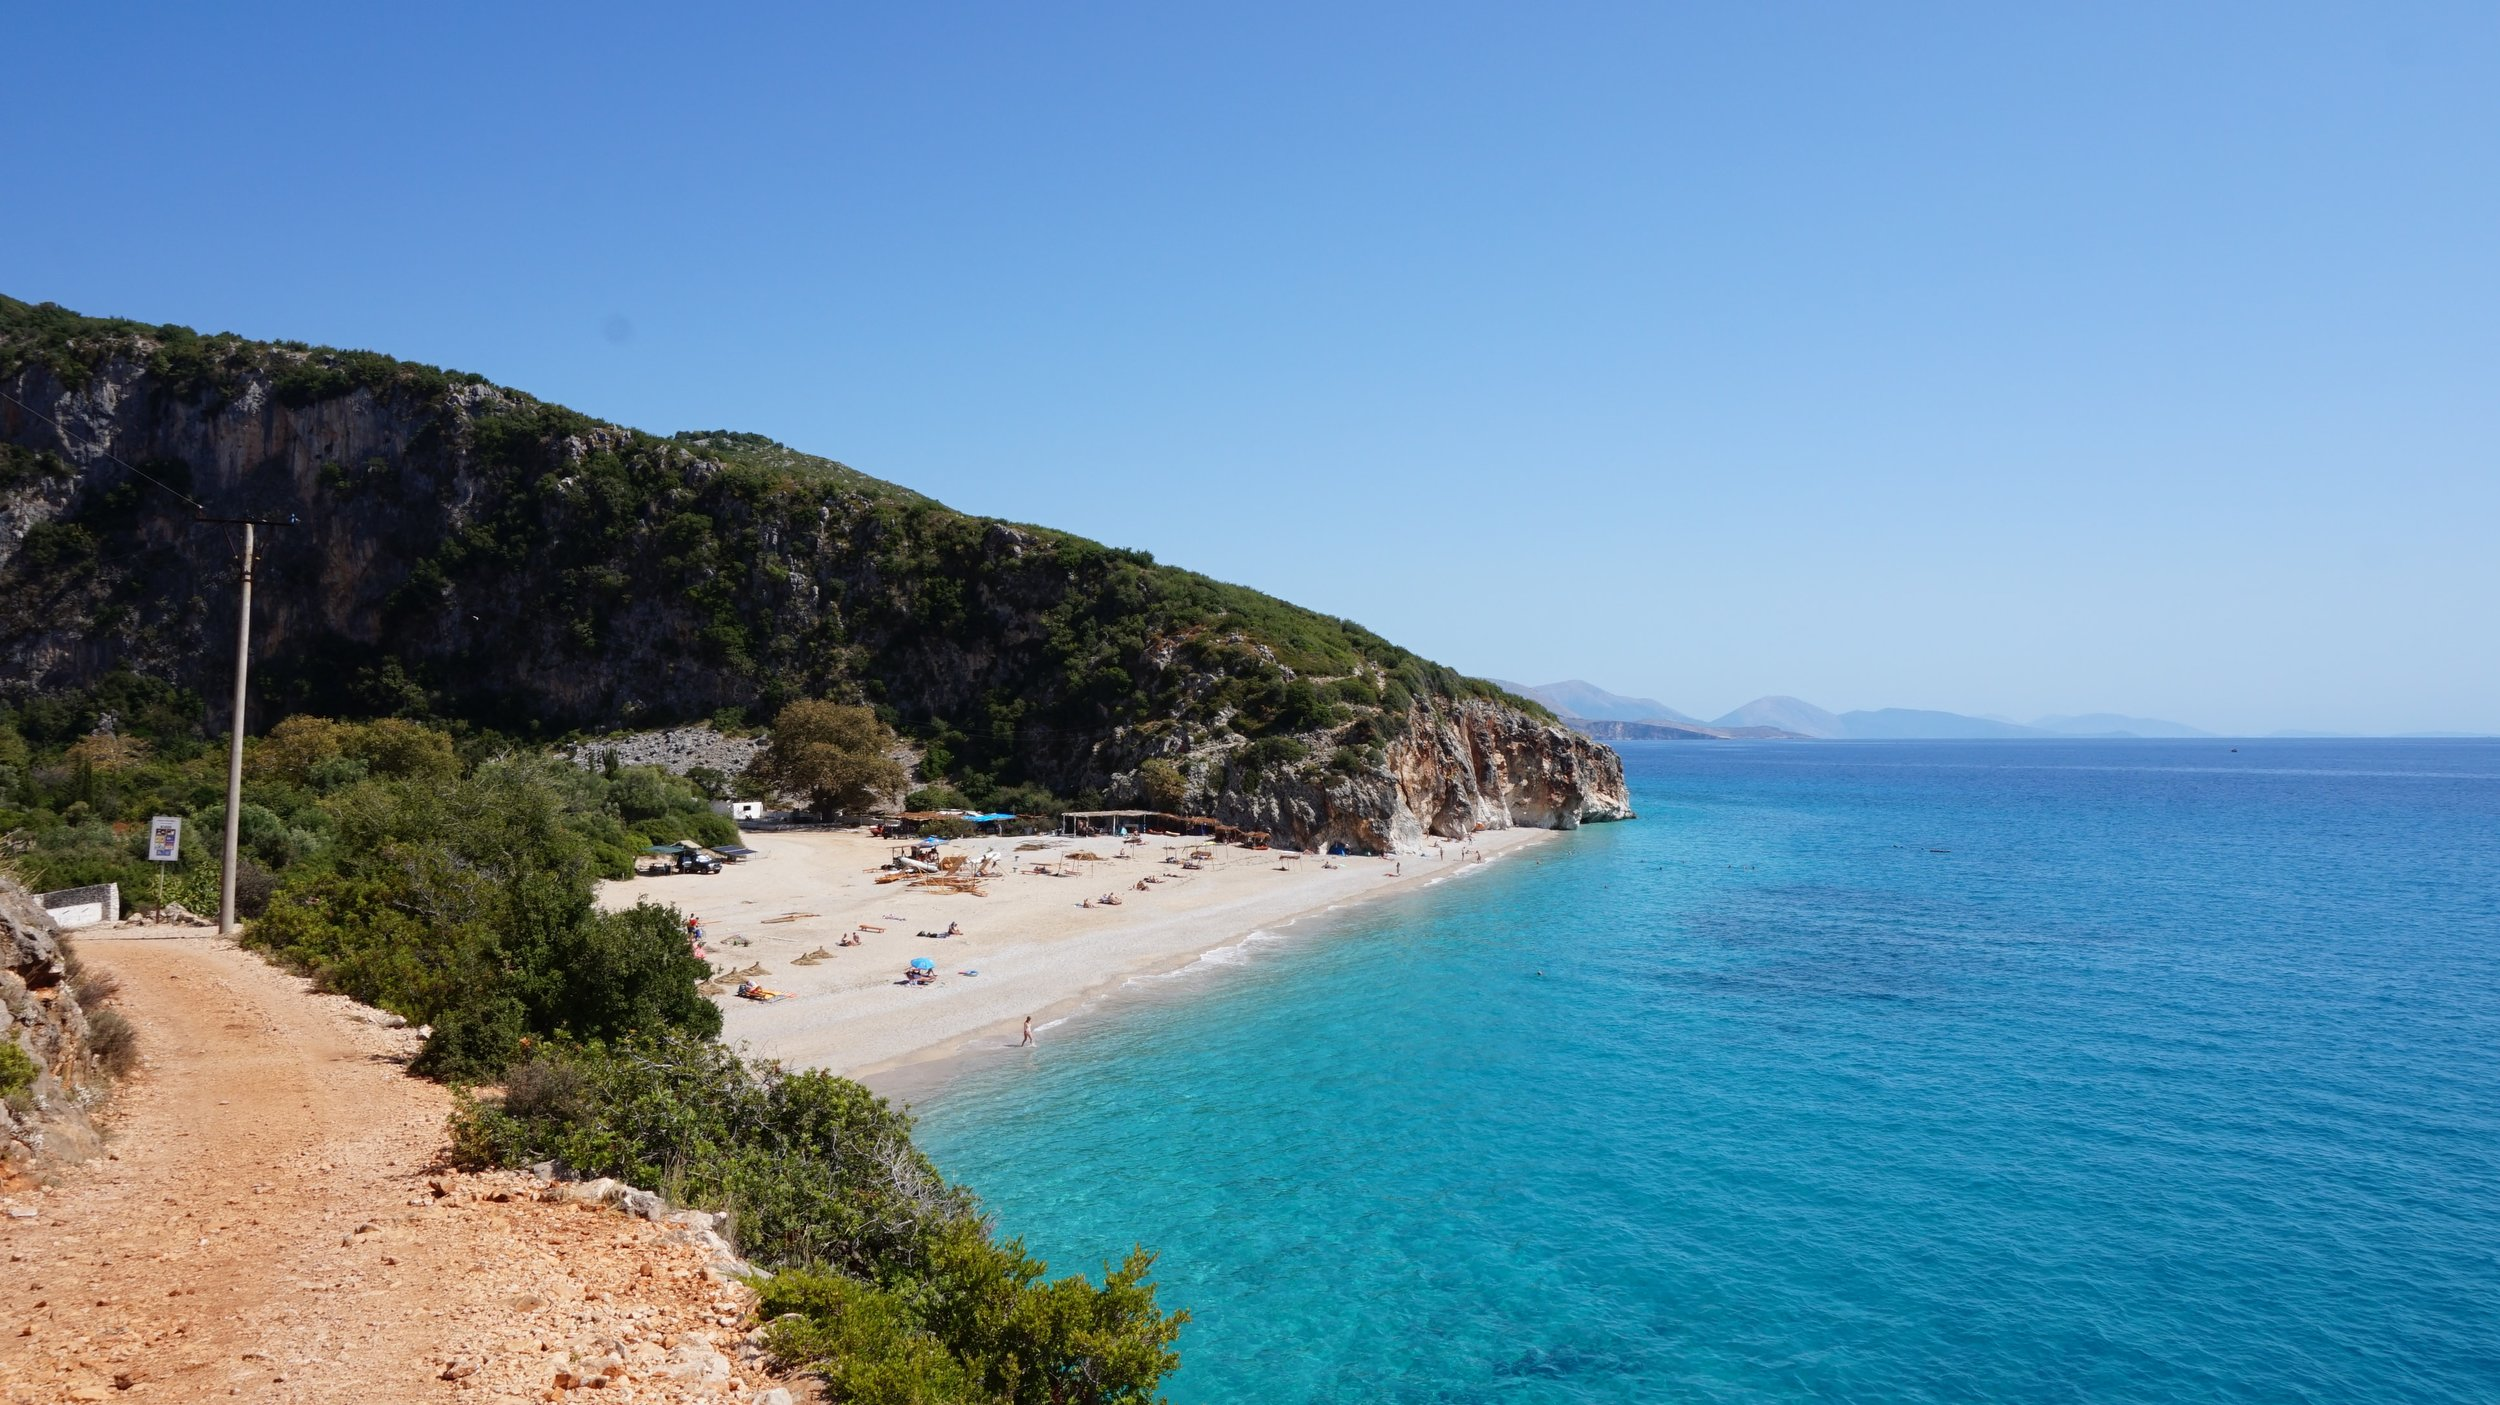 Gjipe beacj is most likely the most beautiful spot we found wild camping Albania